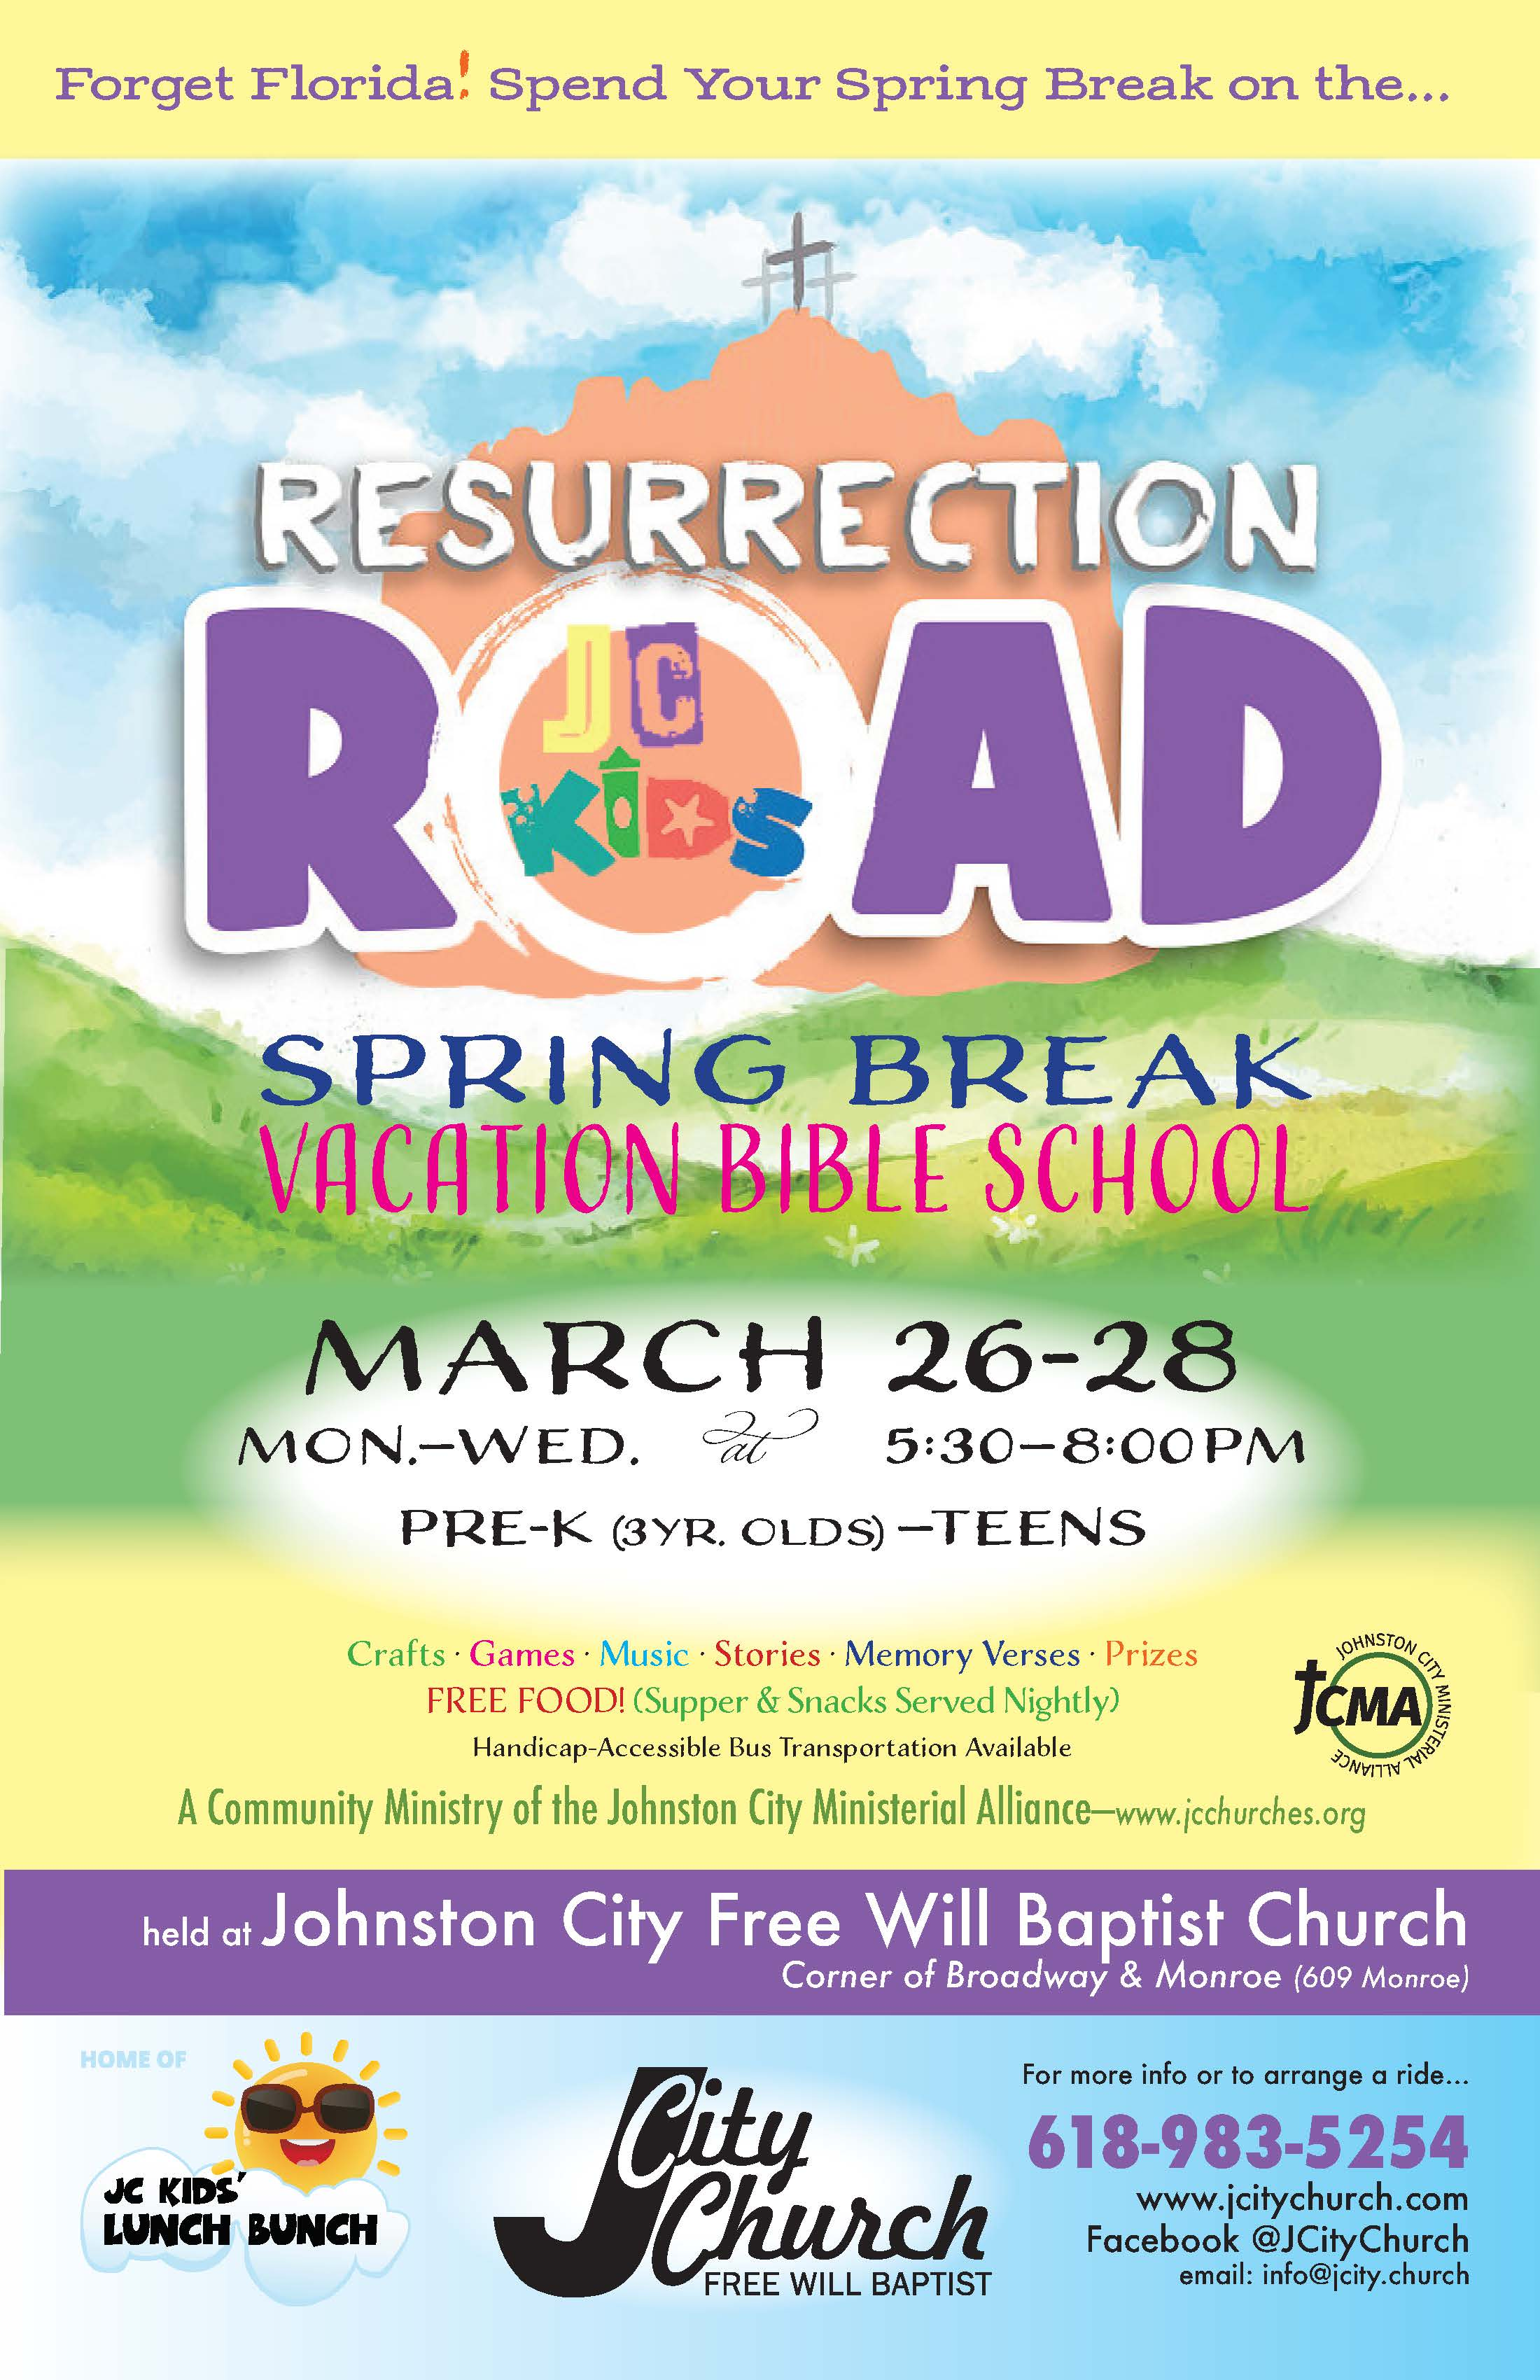 Resurrection Road VBS Begins Monday